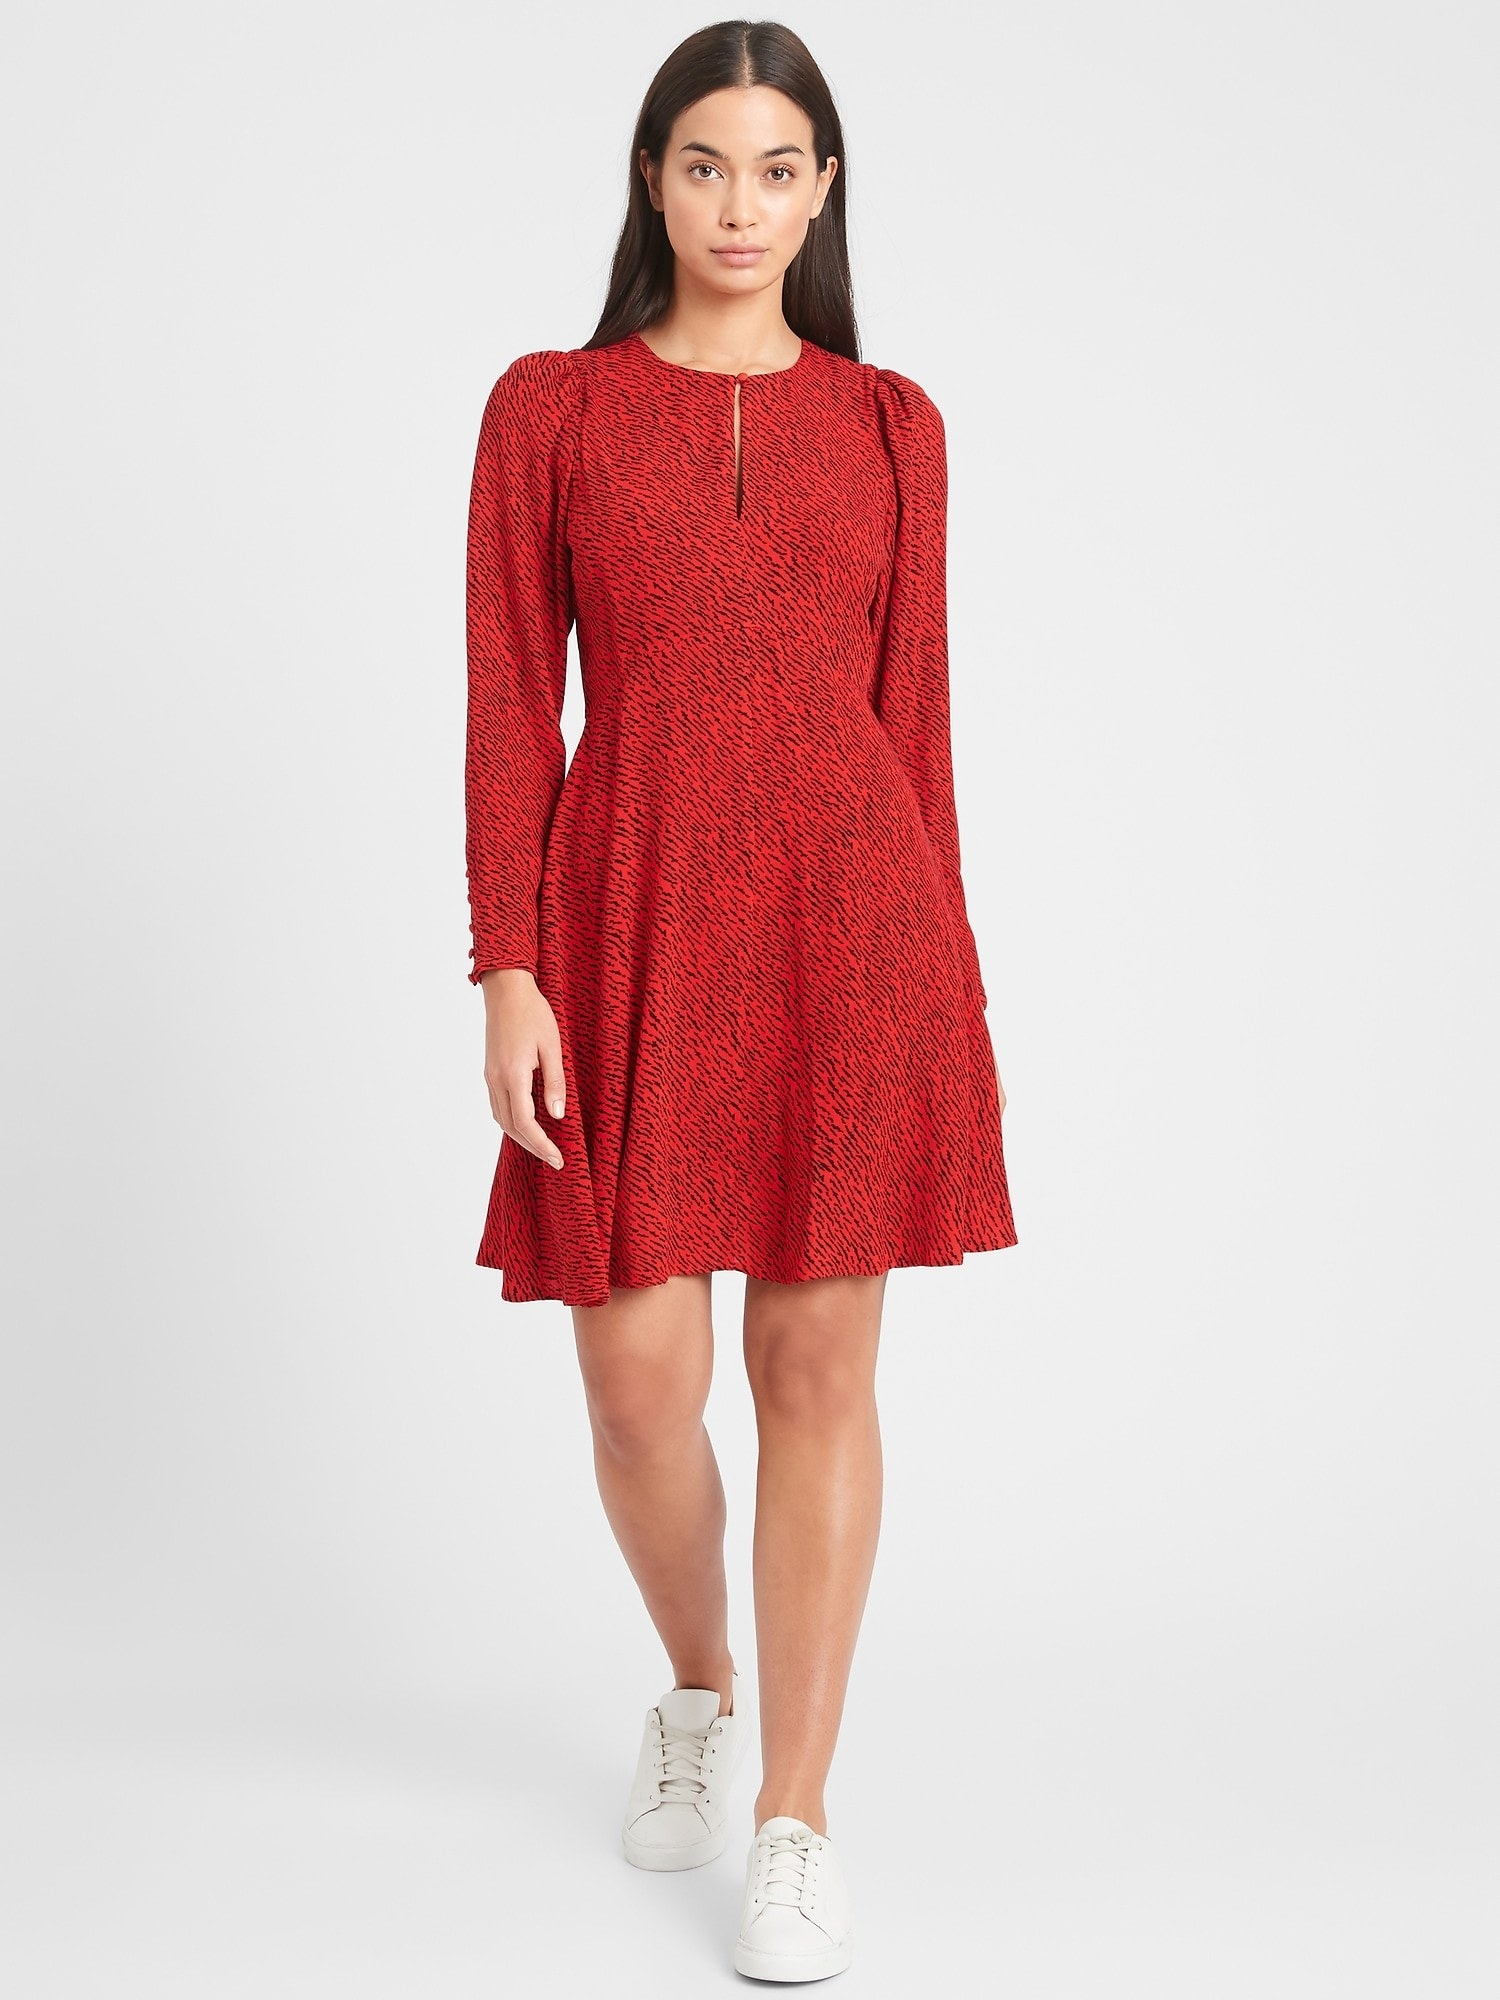 Model wearing the knee-length long-sleeved dress with long key hole in the front in red with a black pattern all over it